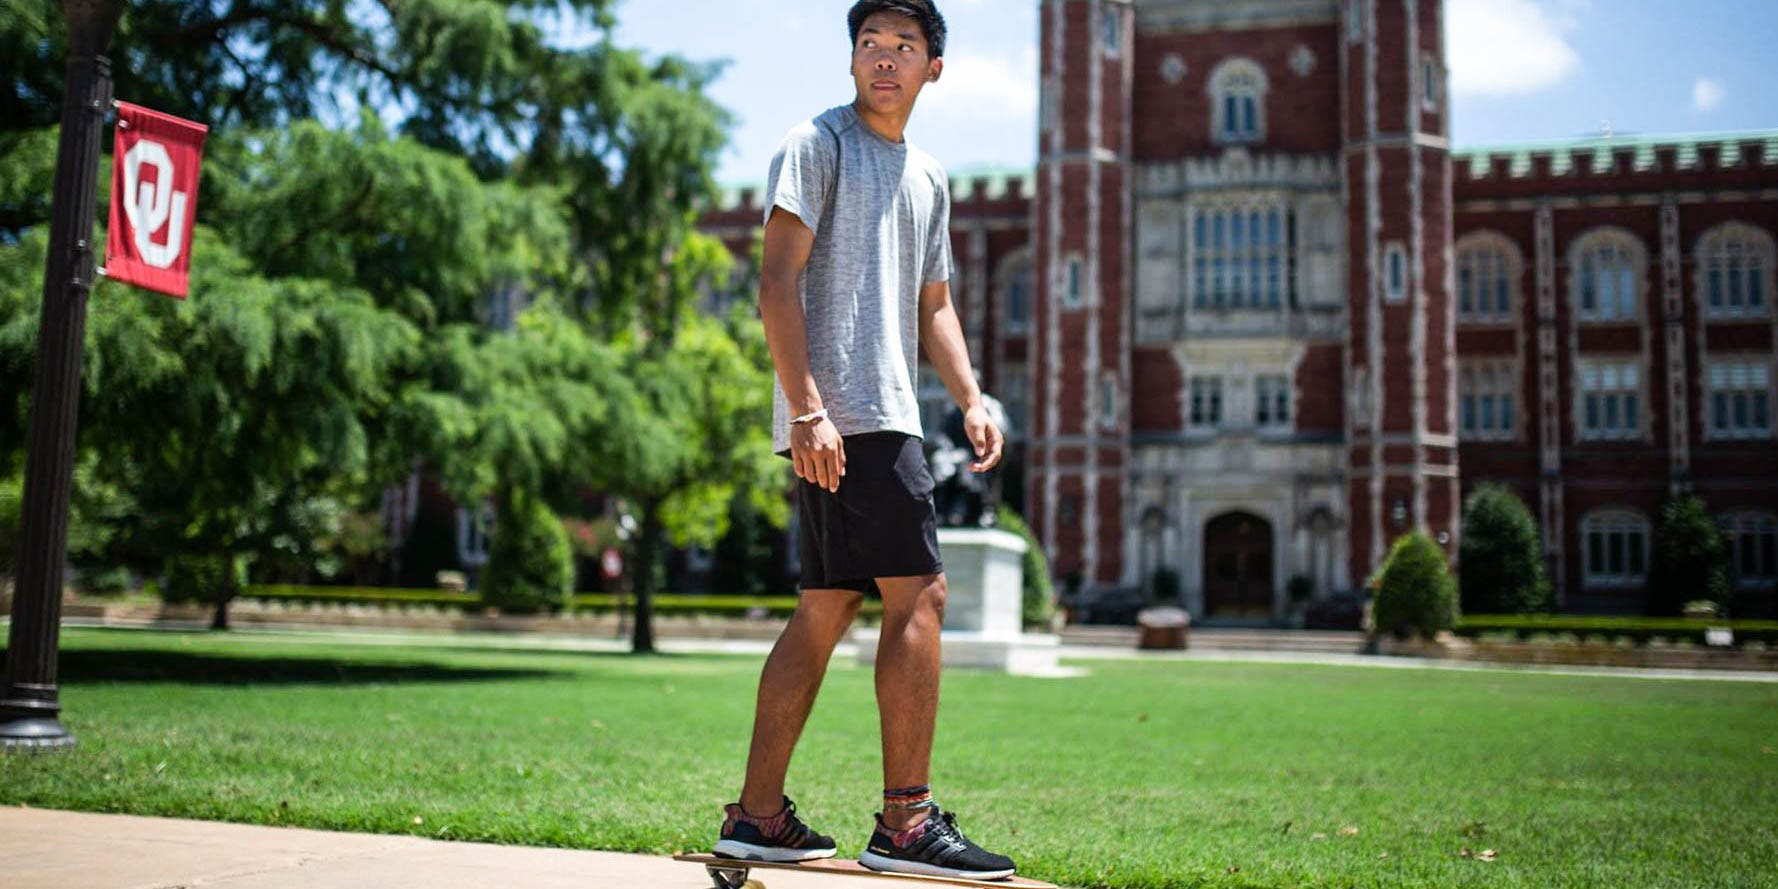 Oklahoma's Biggest Universities Ban Medical Marijuana Use. Here , a student is shown skateboarding on campus at the University of Oklahoma.